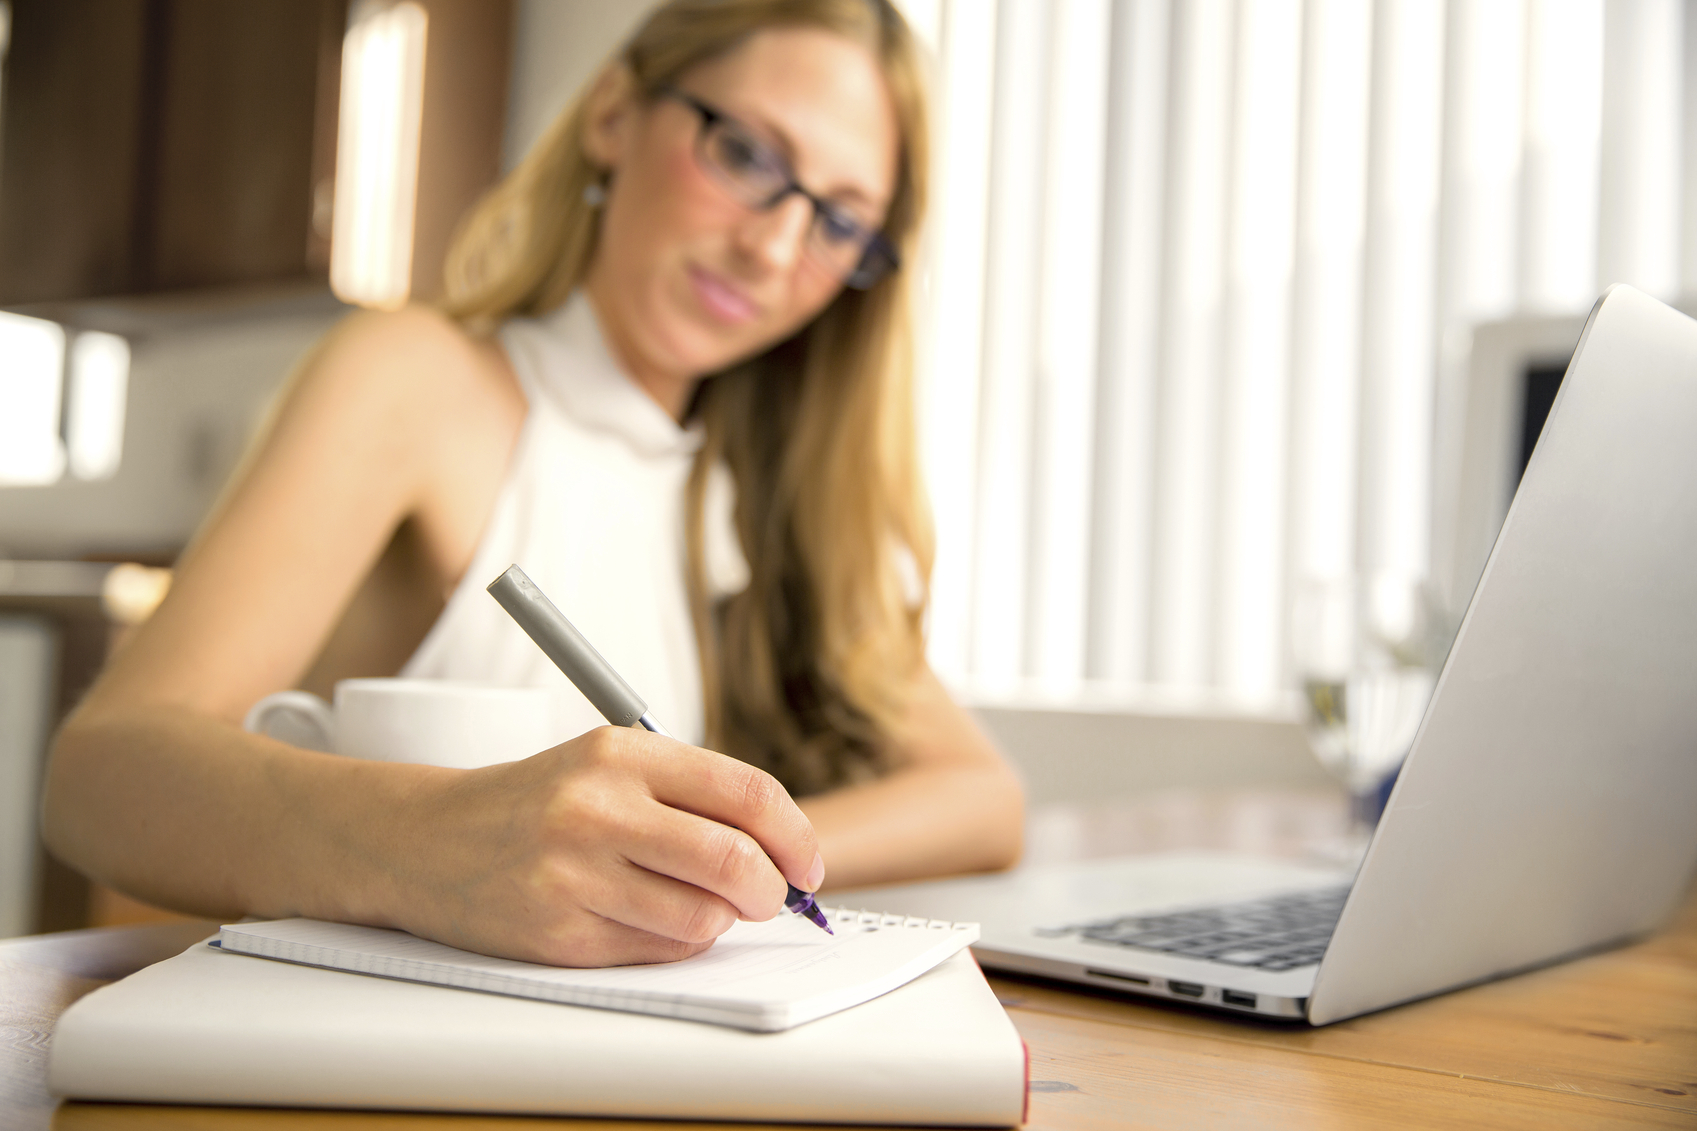 Woman out of focus writing note